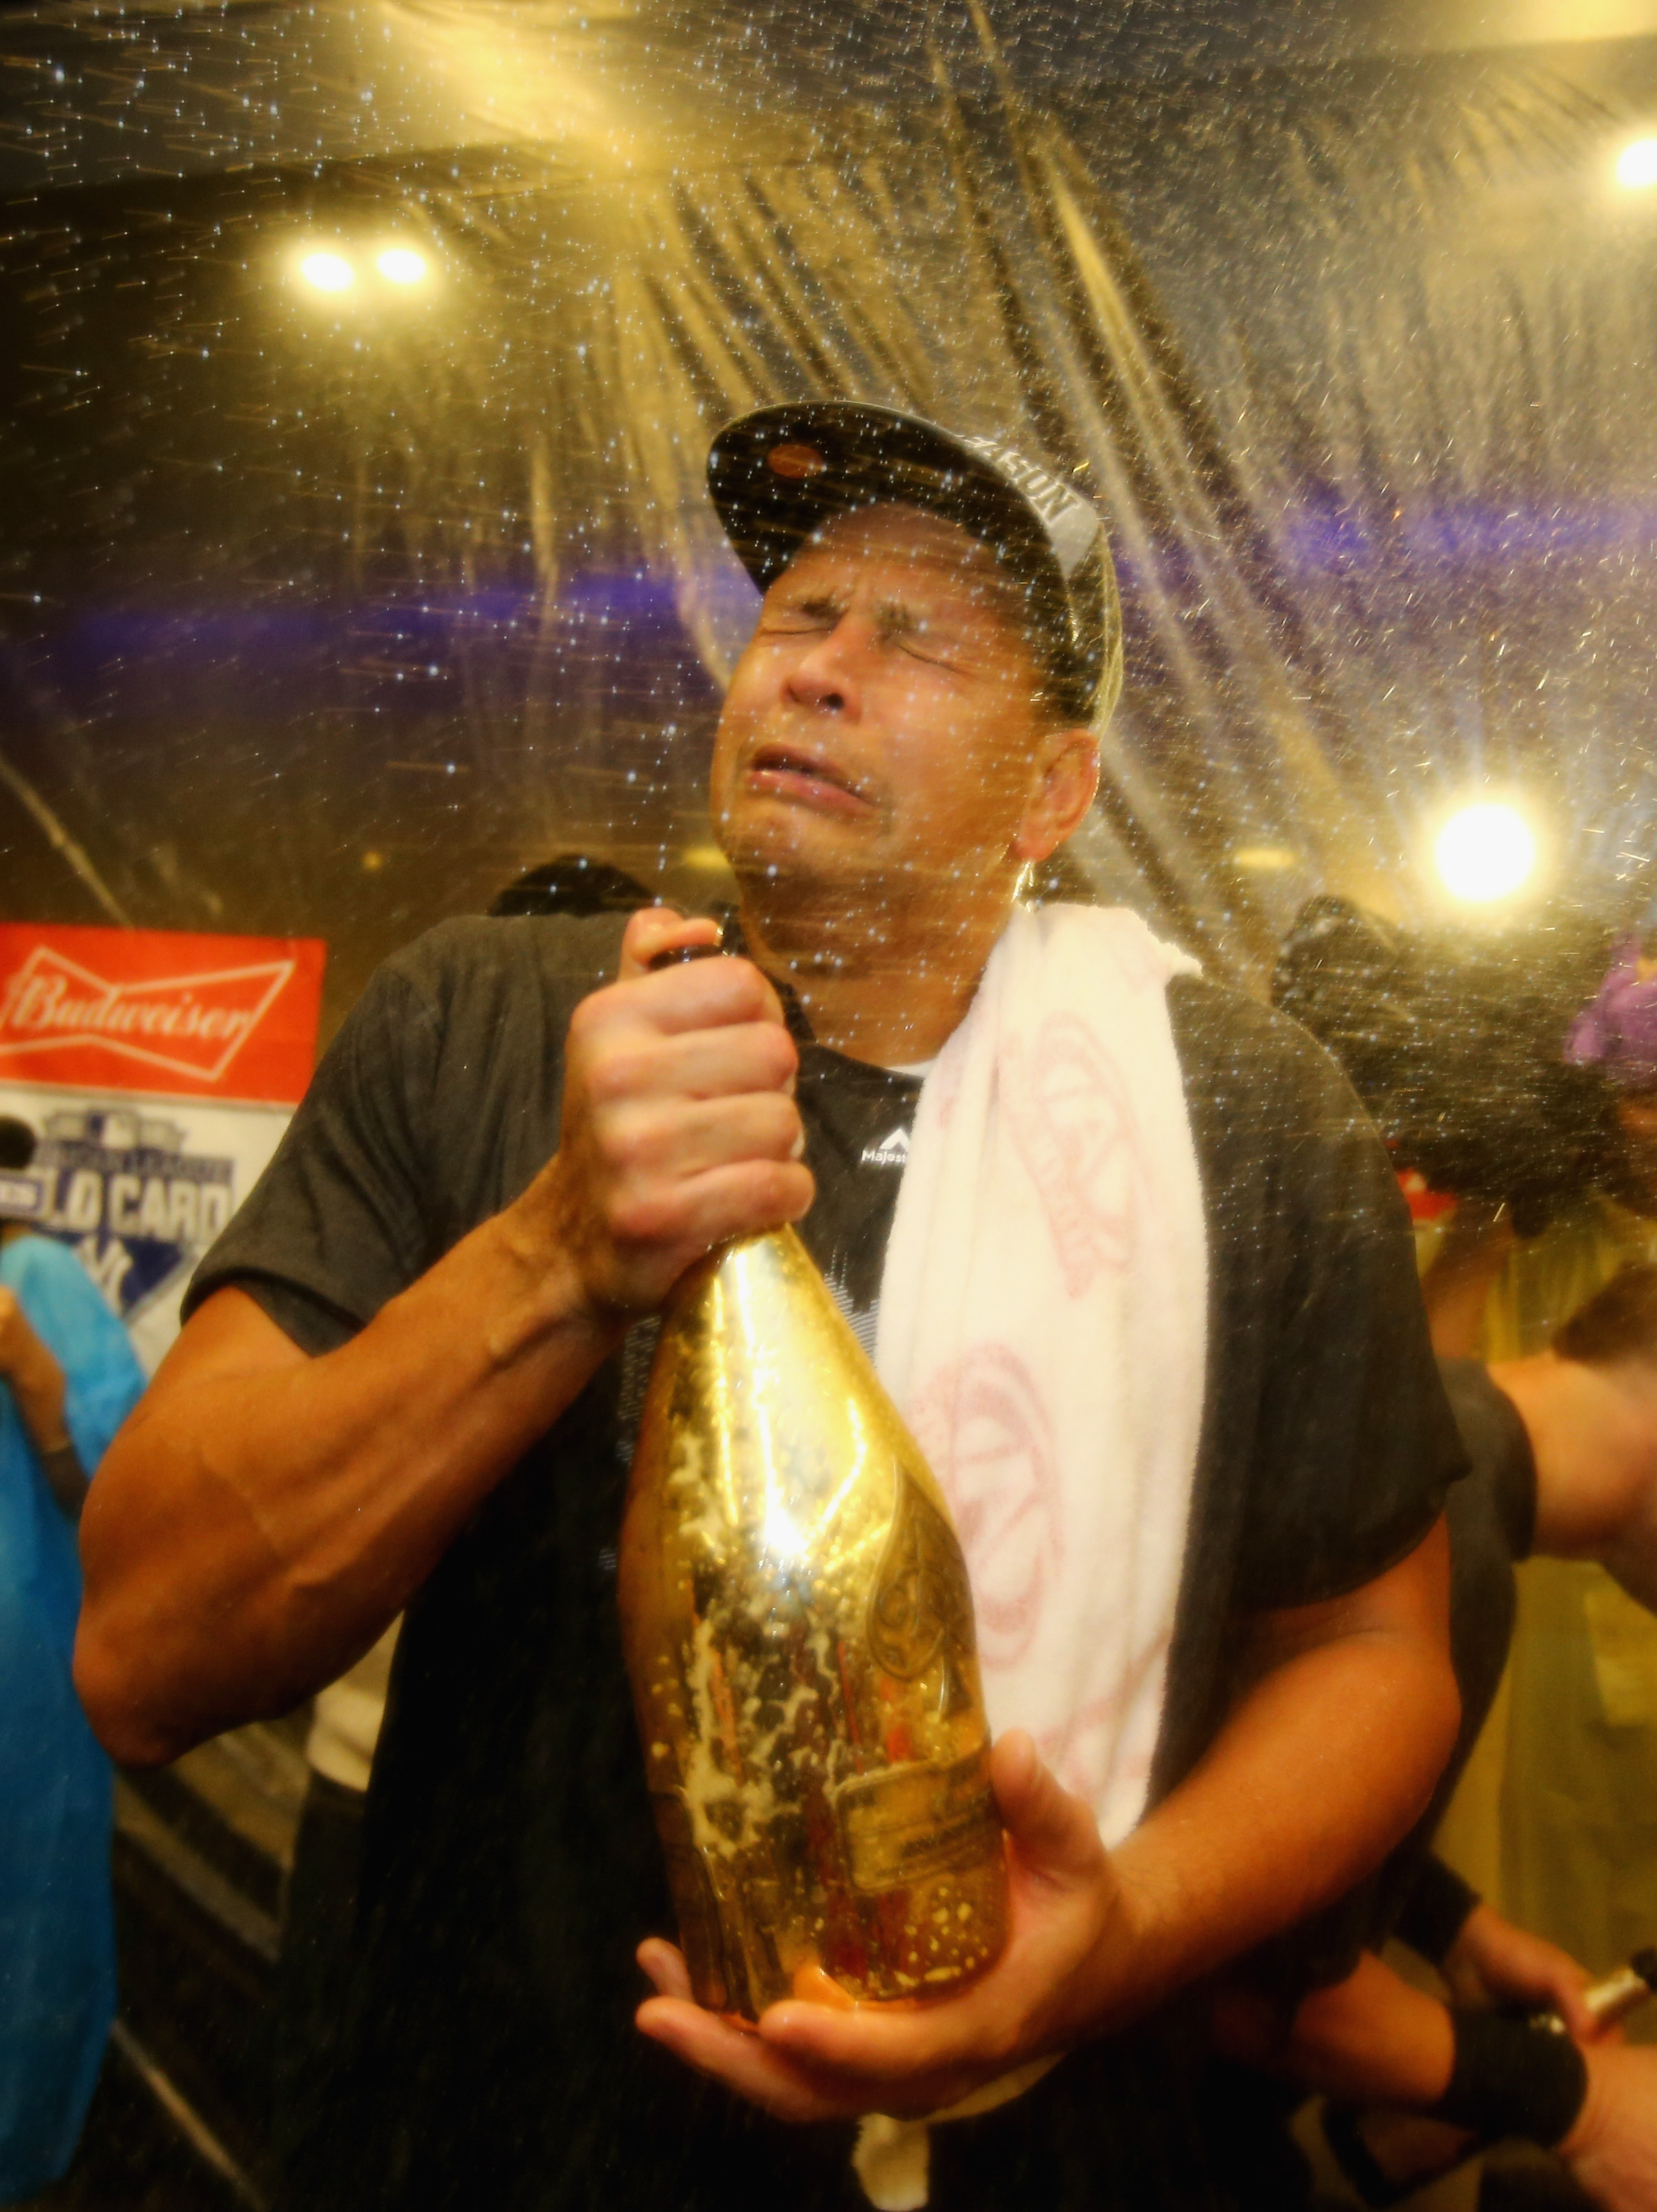 Yankees earn Wild Card berth, have no idea how to celebrate